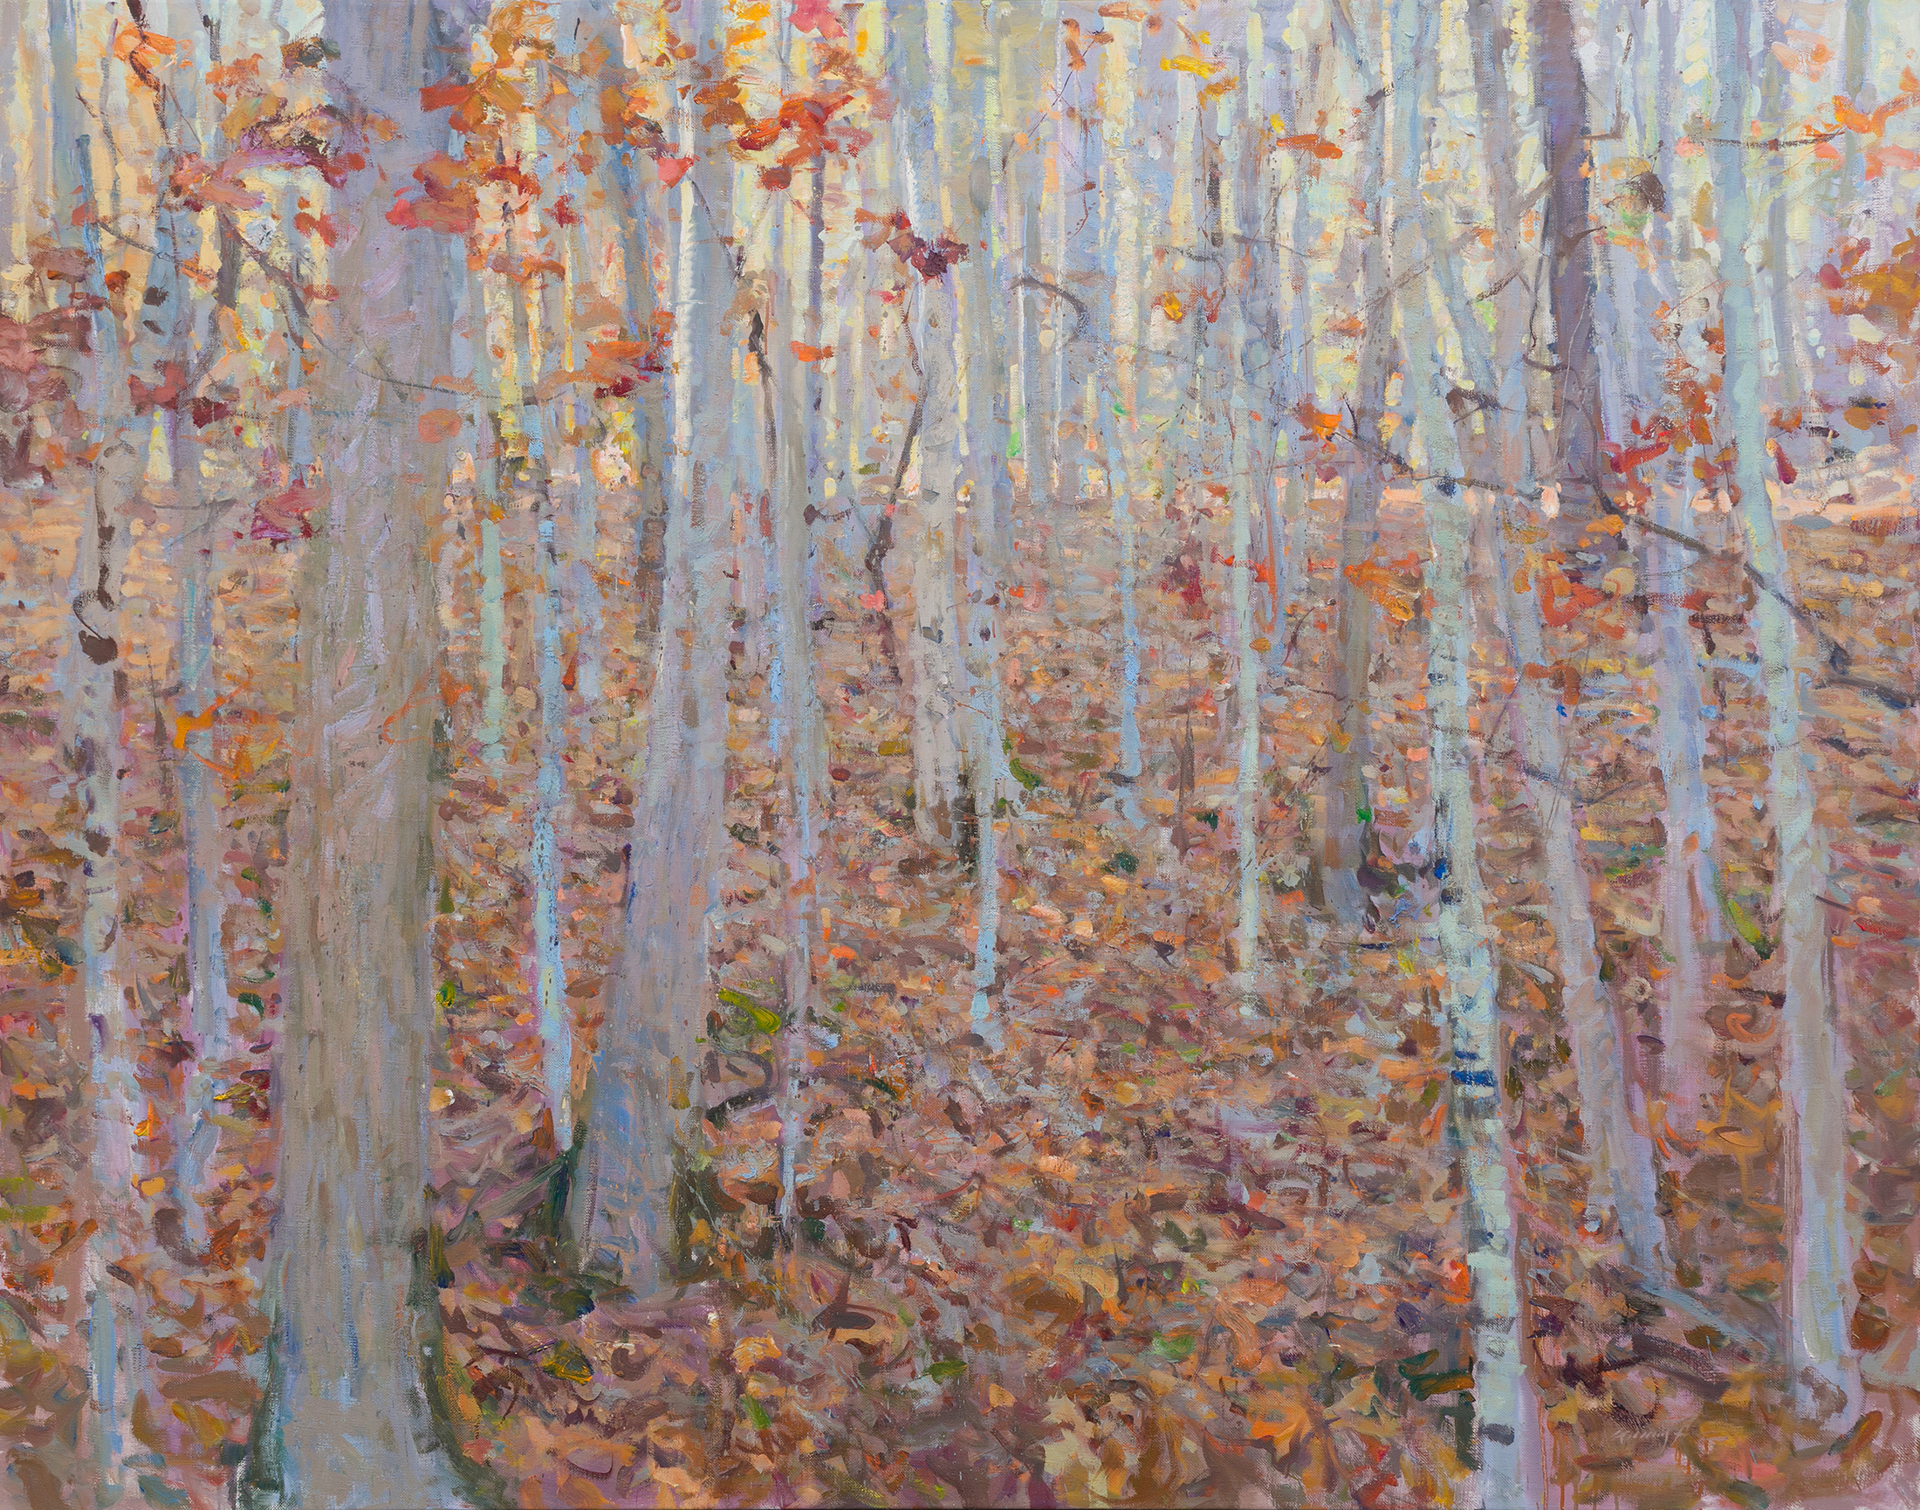 Autumn Woods by Quang Ho